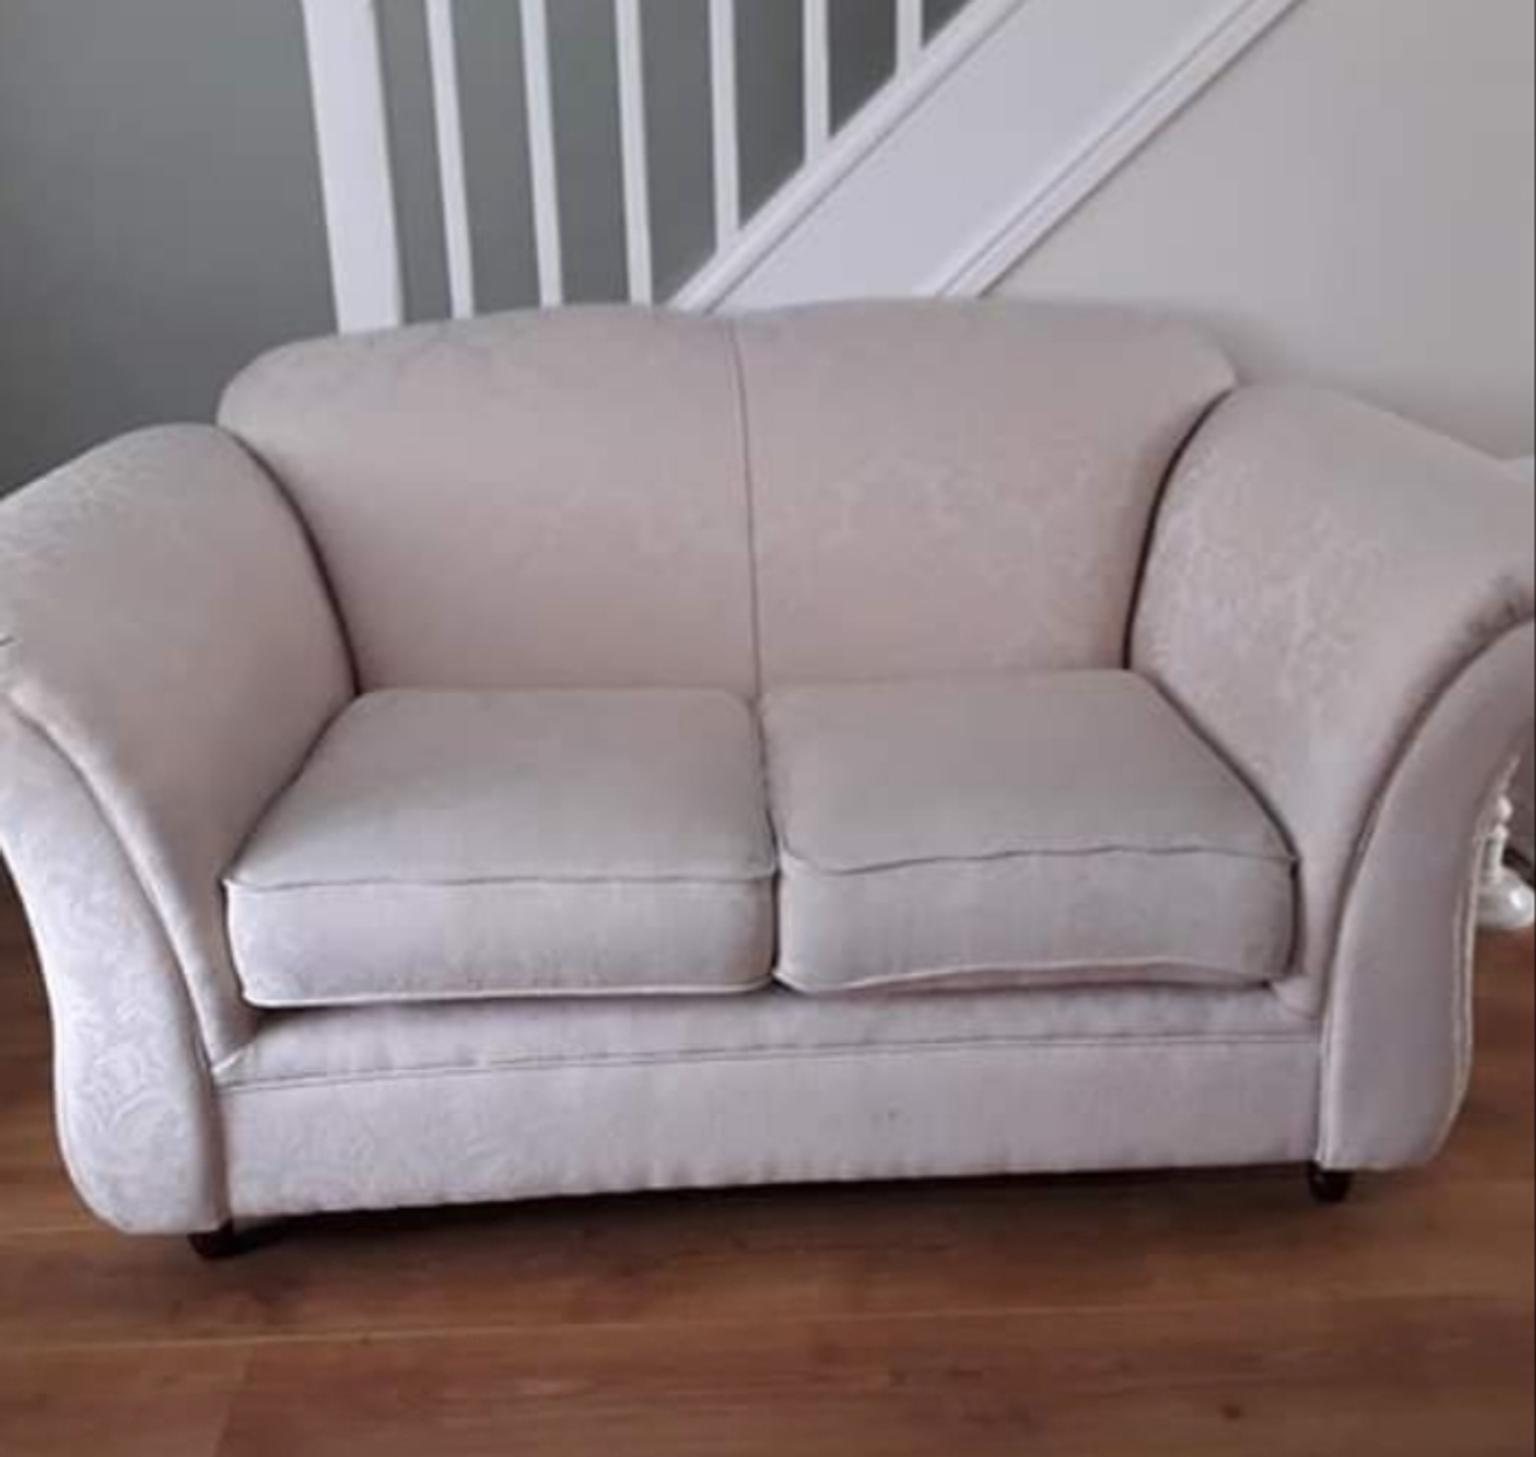 Swell Cream Fabric 2 Seater Sofa Onthecornerstone Fun Painted Chair Ideas Images Onthecornerstoneorg